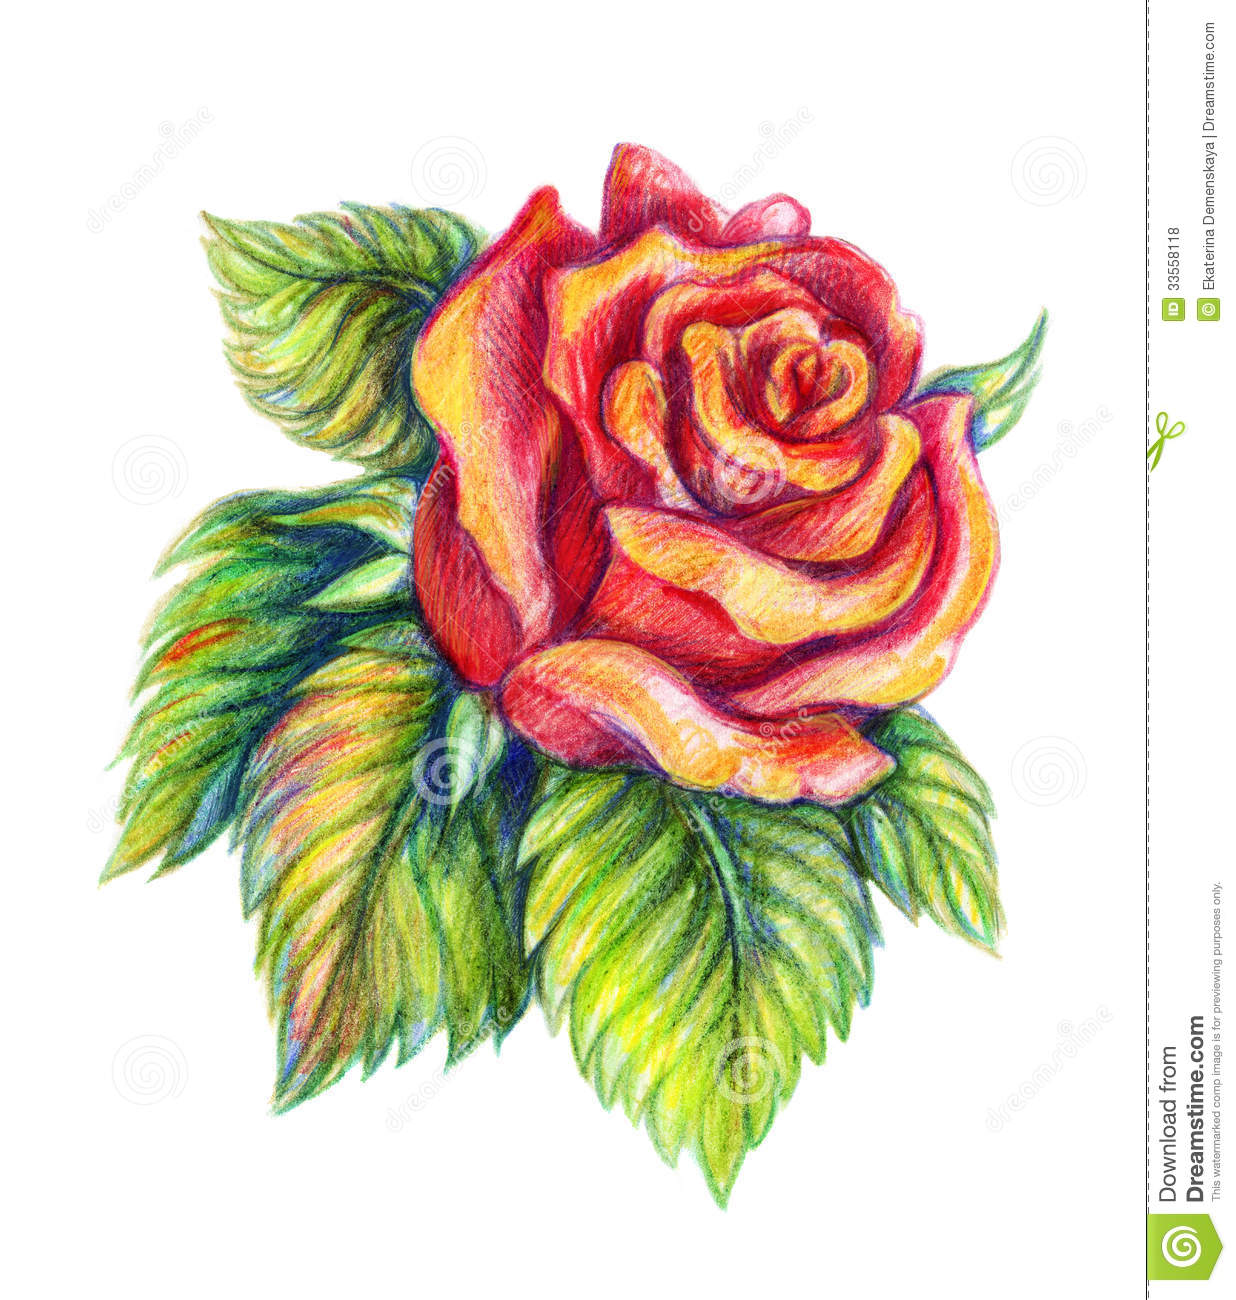 Hand Drawn Red Rose On White Background Royalty Free Stock